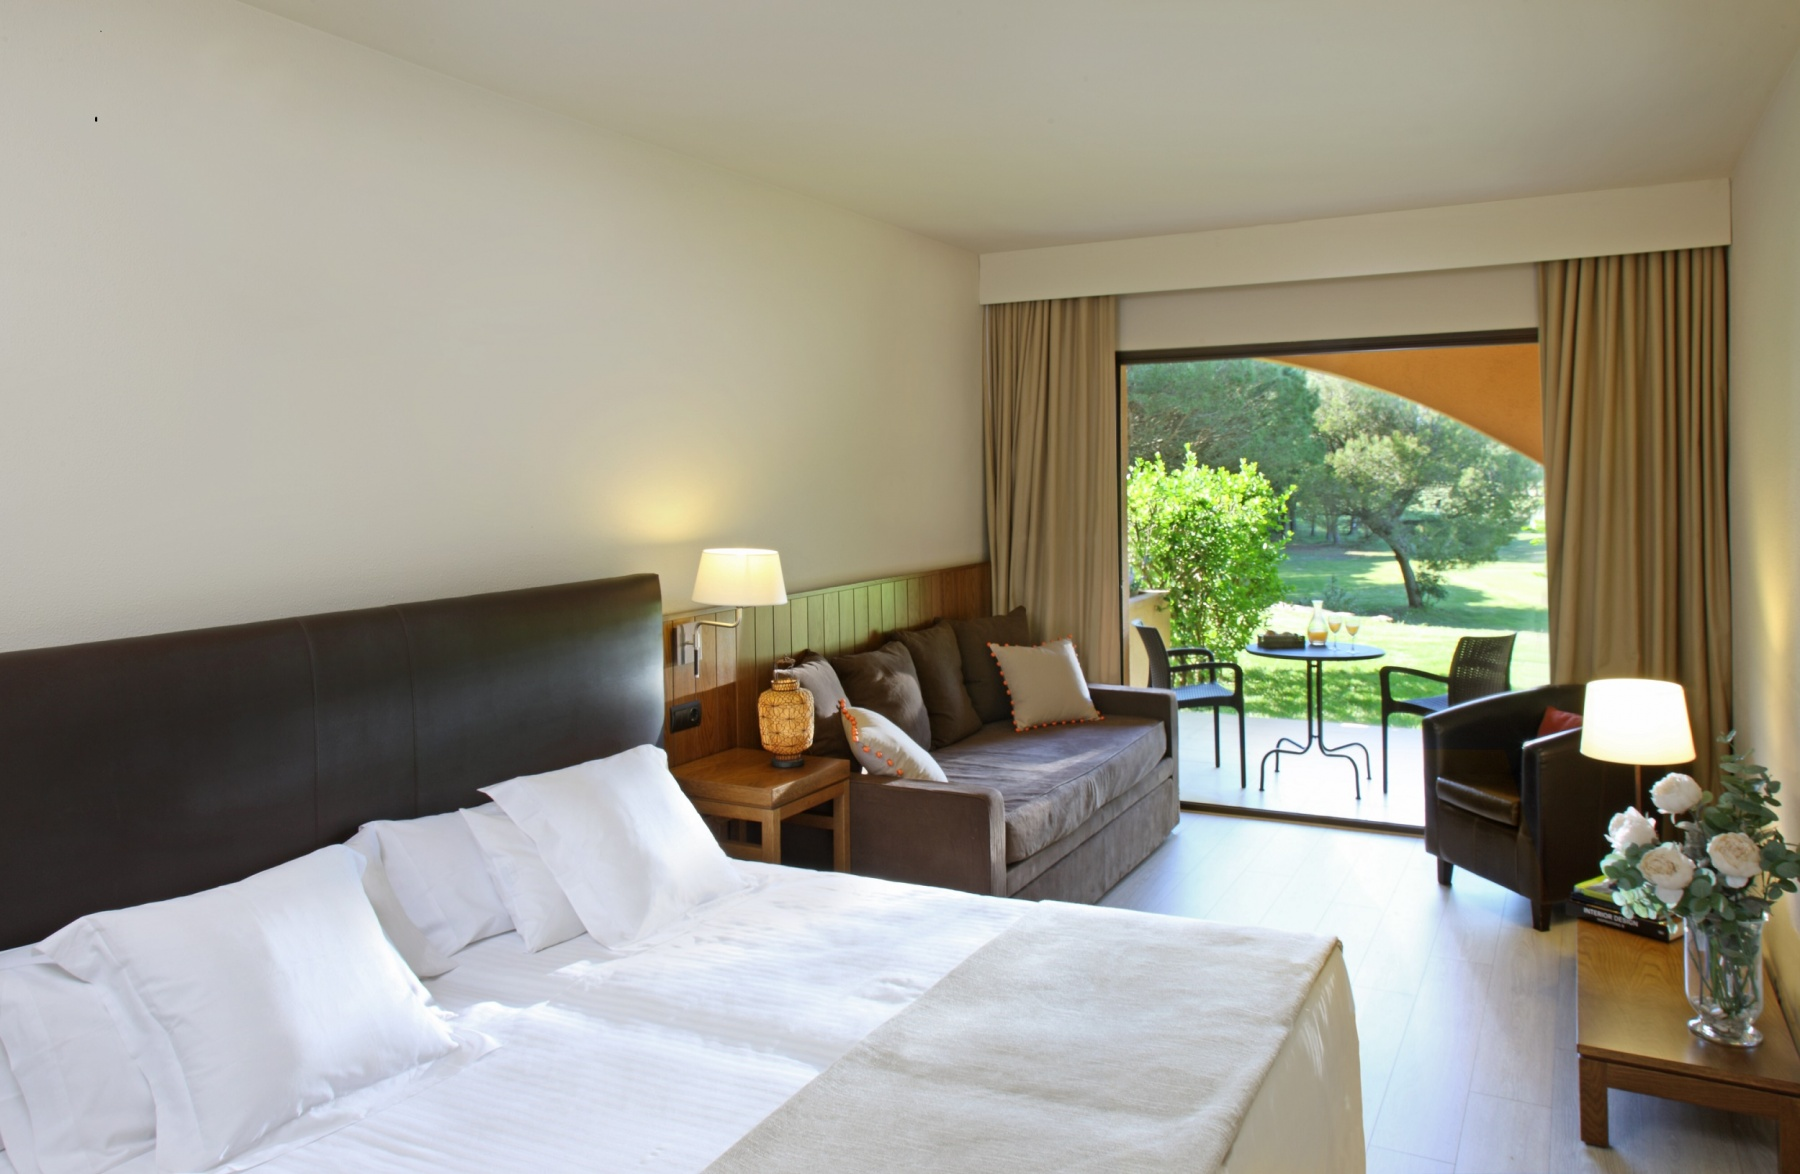 Bilder-Galerie La Costa Beach & Golf Resort**** - © La Costa